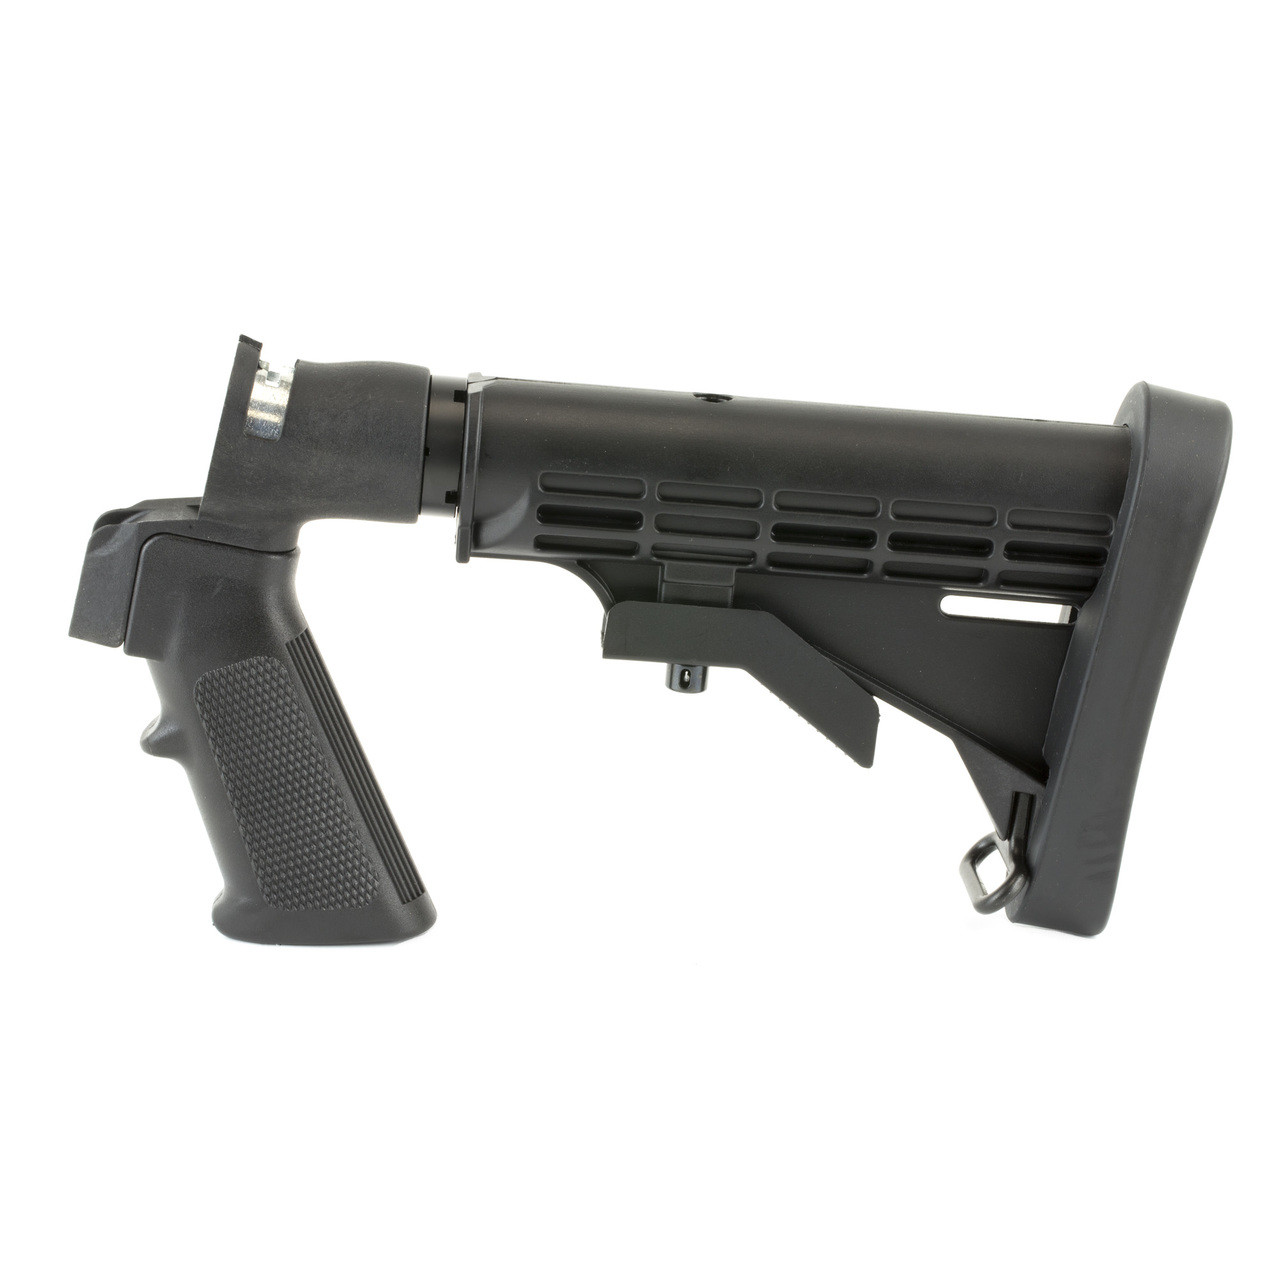 Mossberg Stock, Synthetic, Blk, 6-Pos Adjustable Stock, Flex Series 95219,  UPC : 015813952194